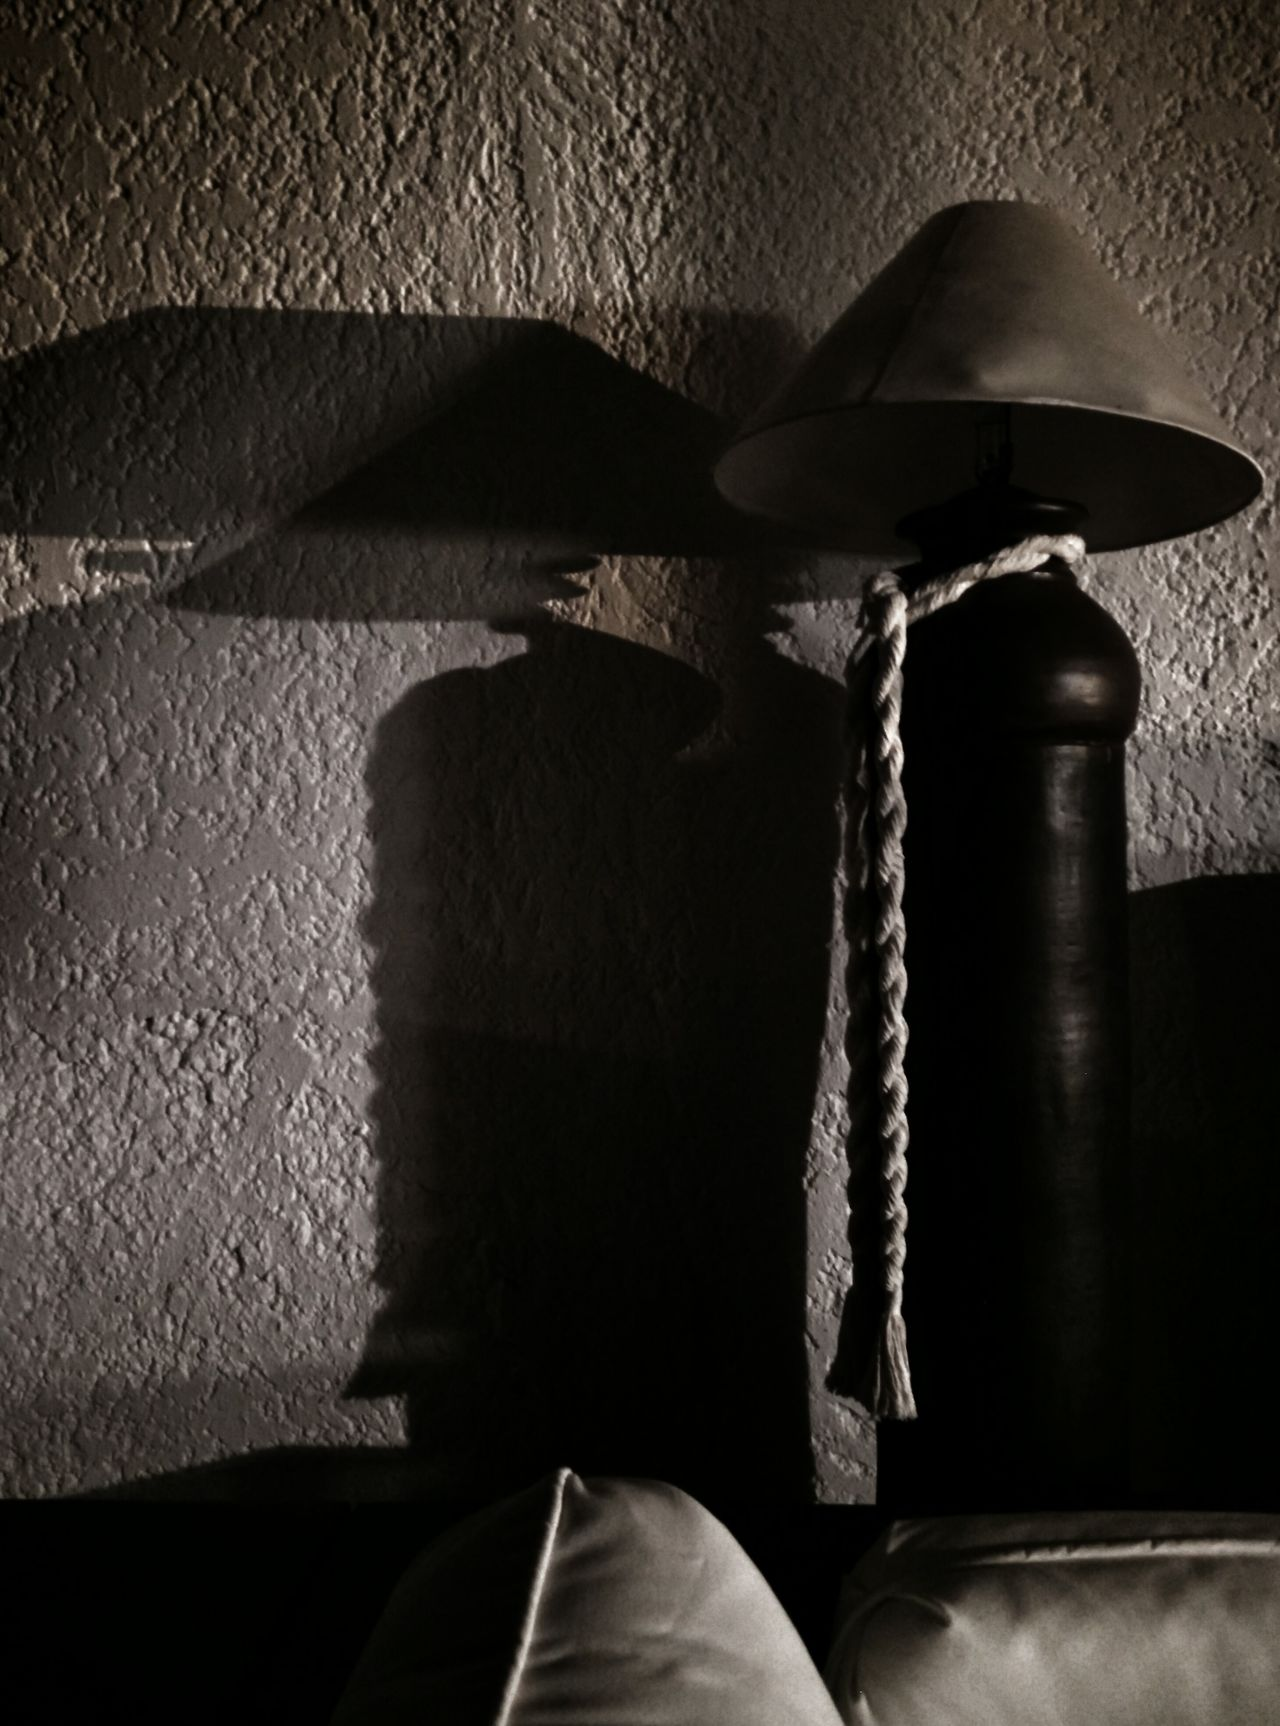 Shadow of Miyamoto Musashi. Large lamp that casts a shadow, like a shadow of a samurai with hat. Close-up Comfortable Contemplation Detail Focus On Foreground Hanging Hat Home Indoors  Japan Lamp Metal Metallic Miyamoto Musashi Music Occupation Rusty Samurai Shadow Shadow Of Miyamoto Musashi Single Object Still Life Textured  Wall Wall - Building Feature